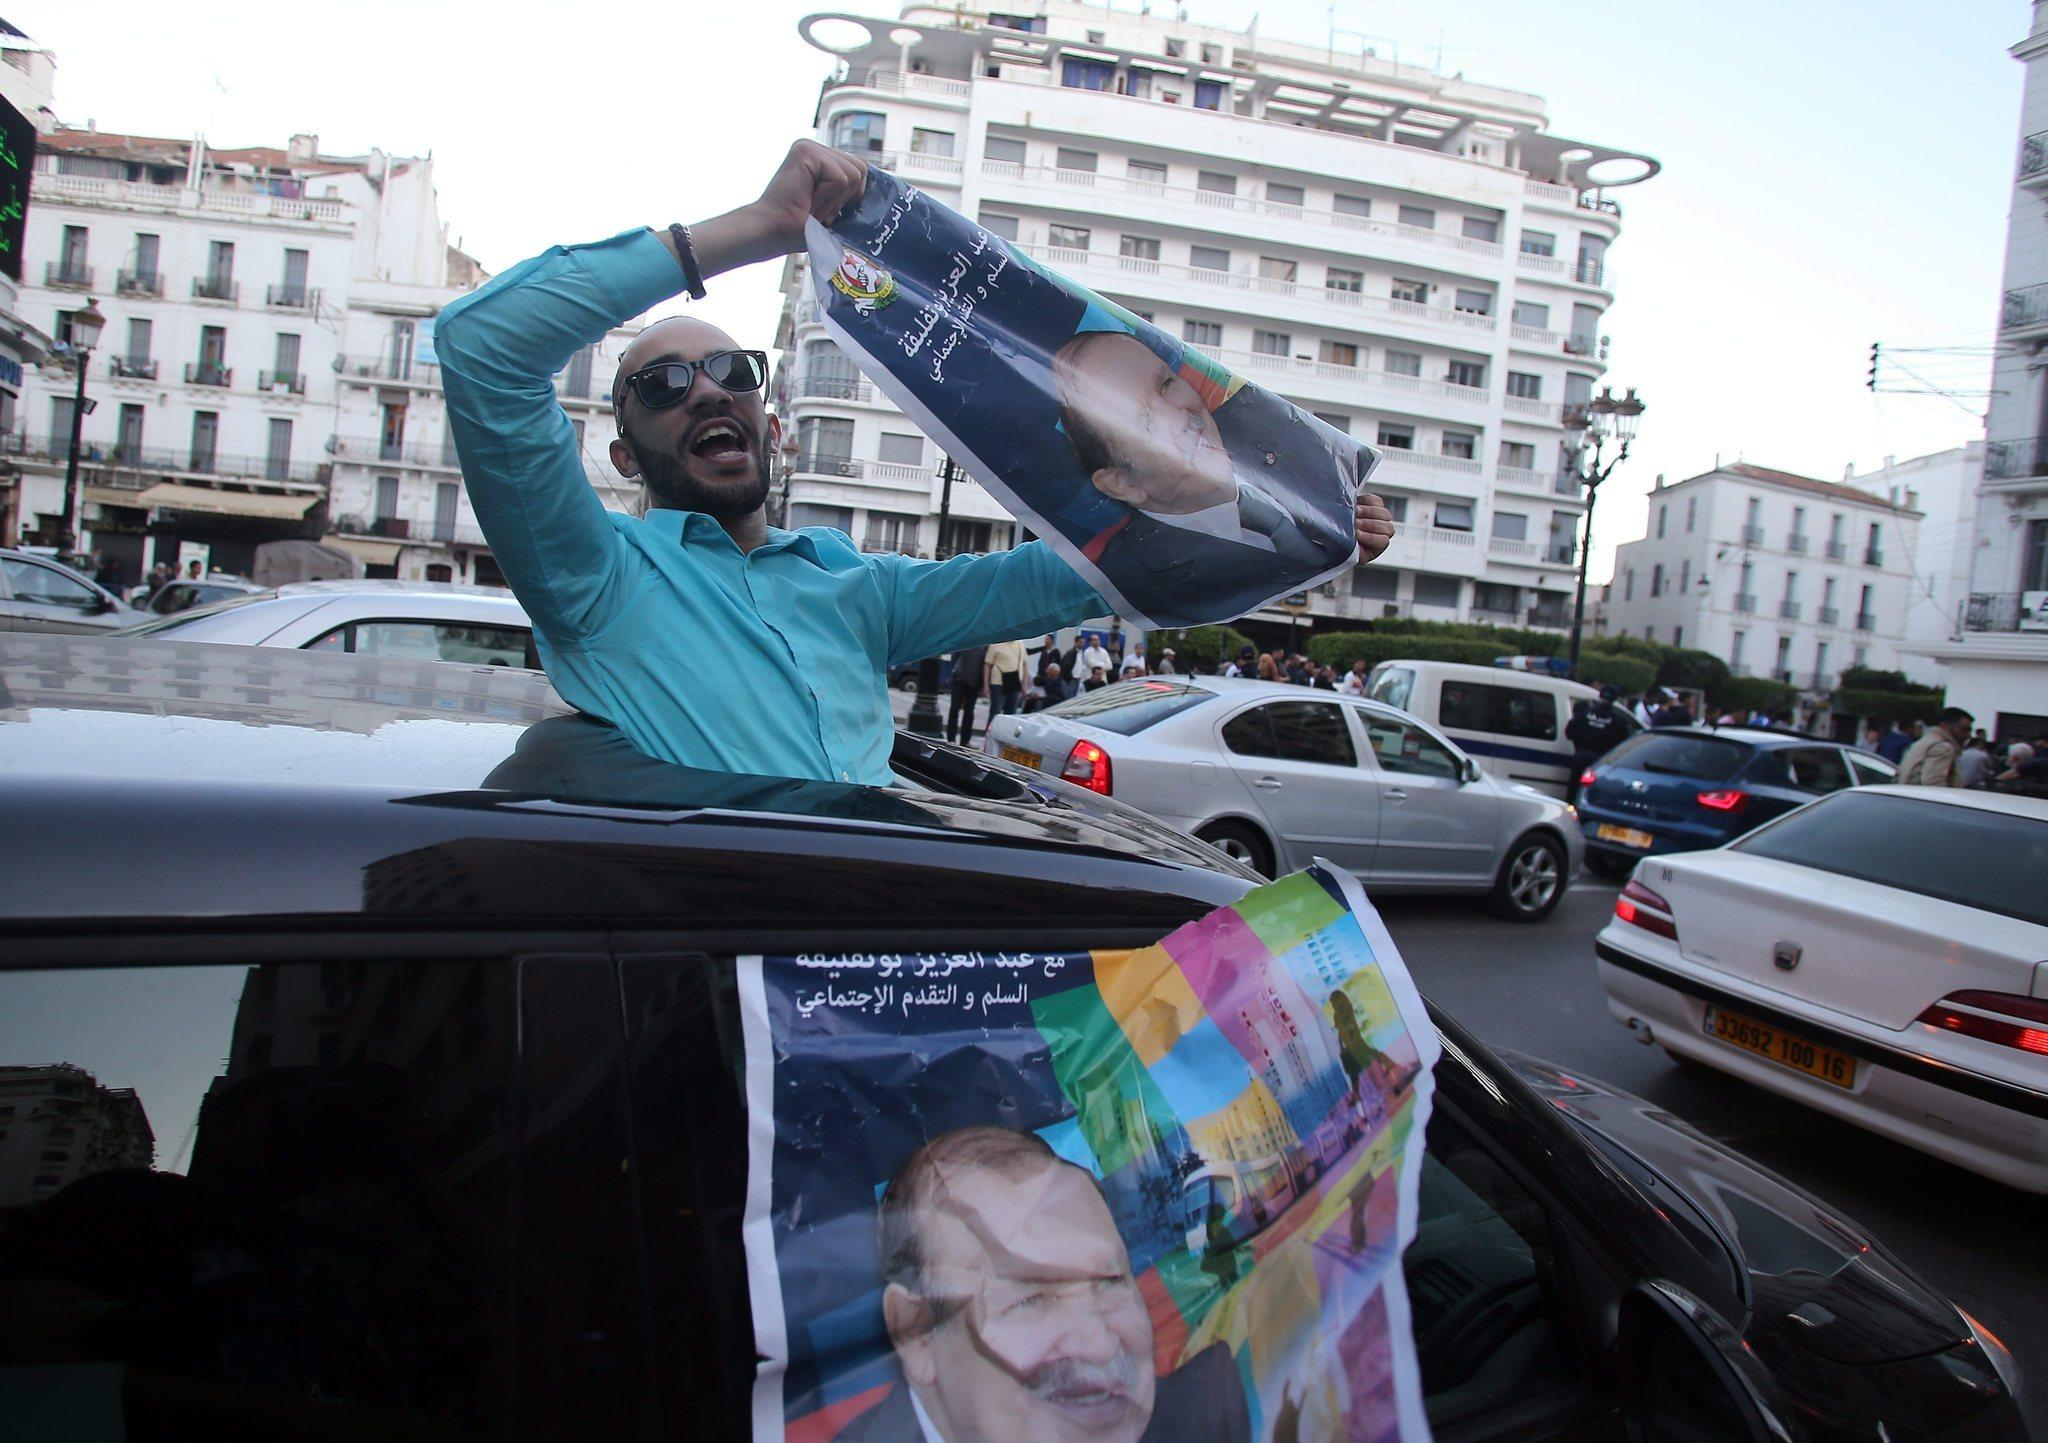 A supporter of Algerian President Abdelaziz Bouteflika celebrates his reelection.